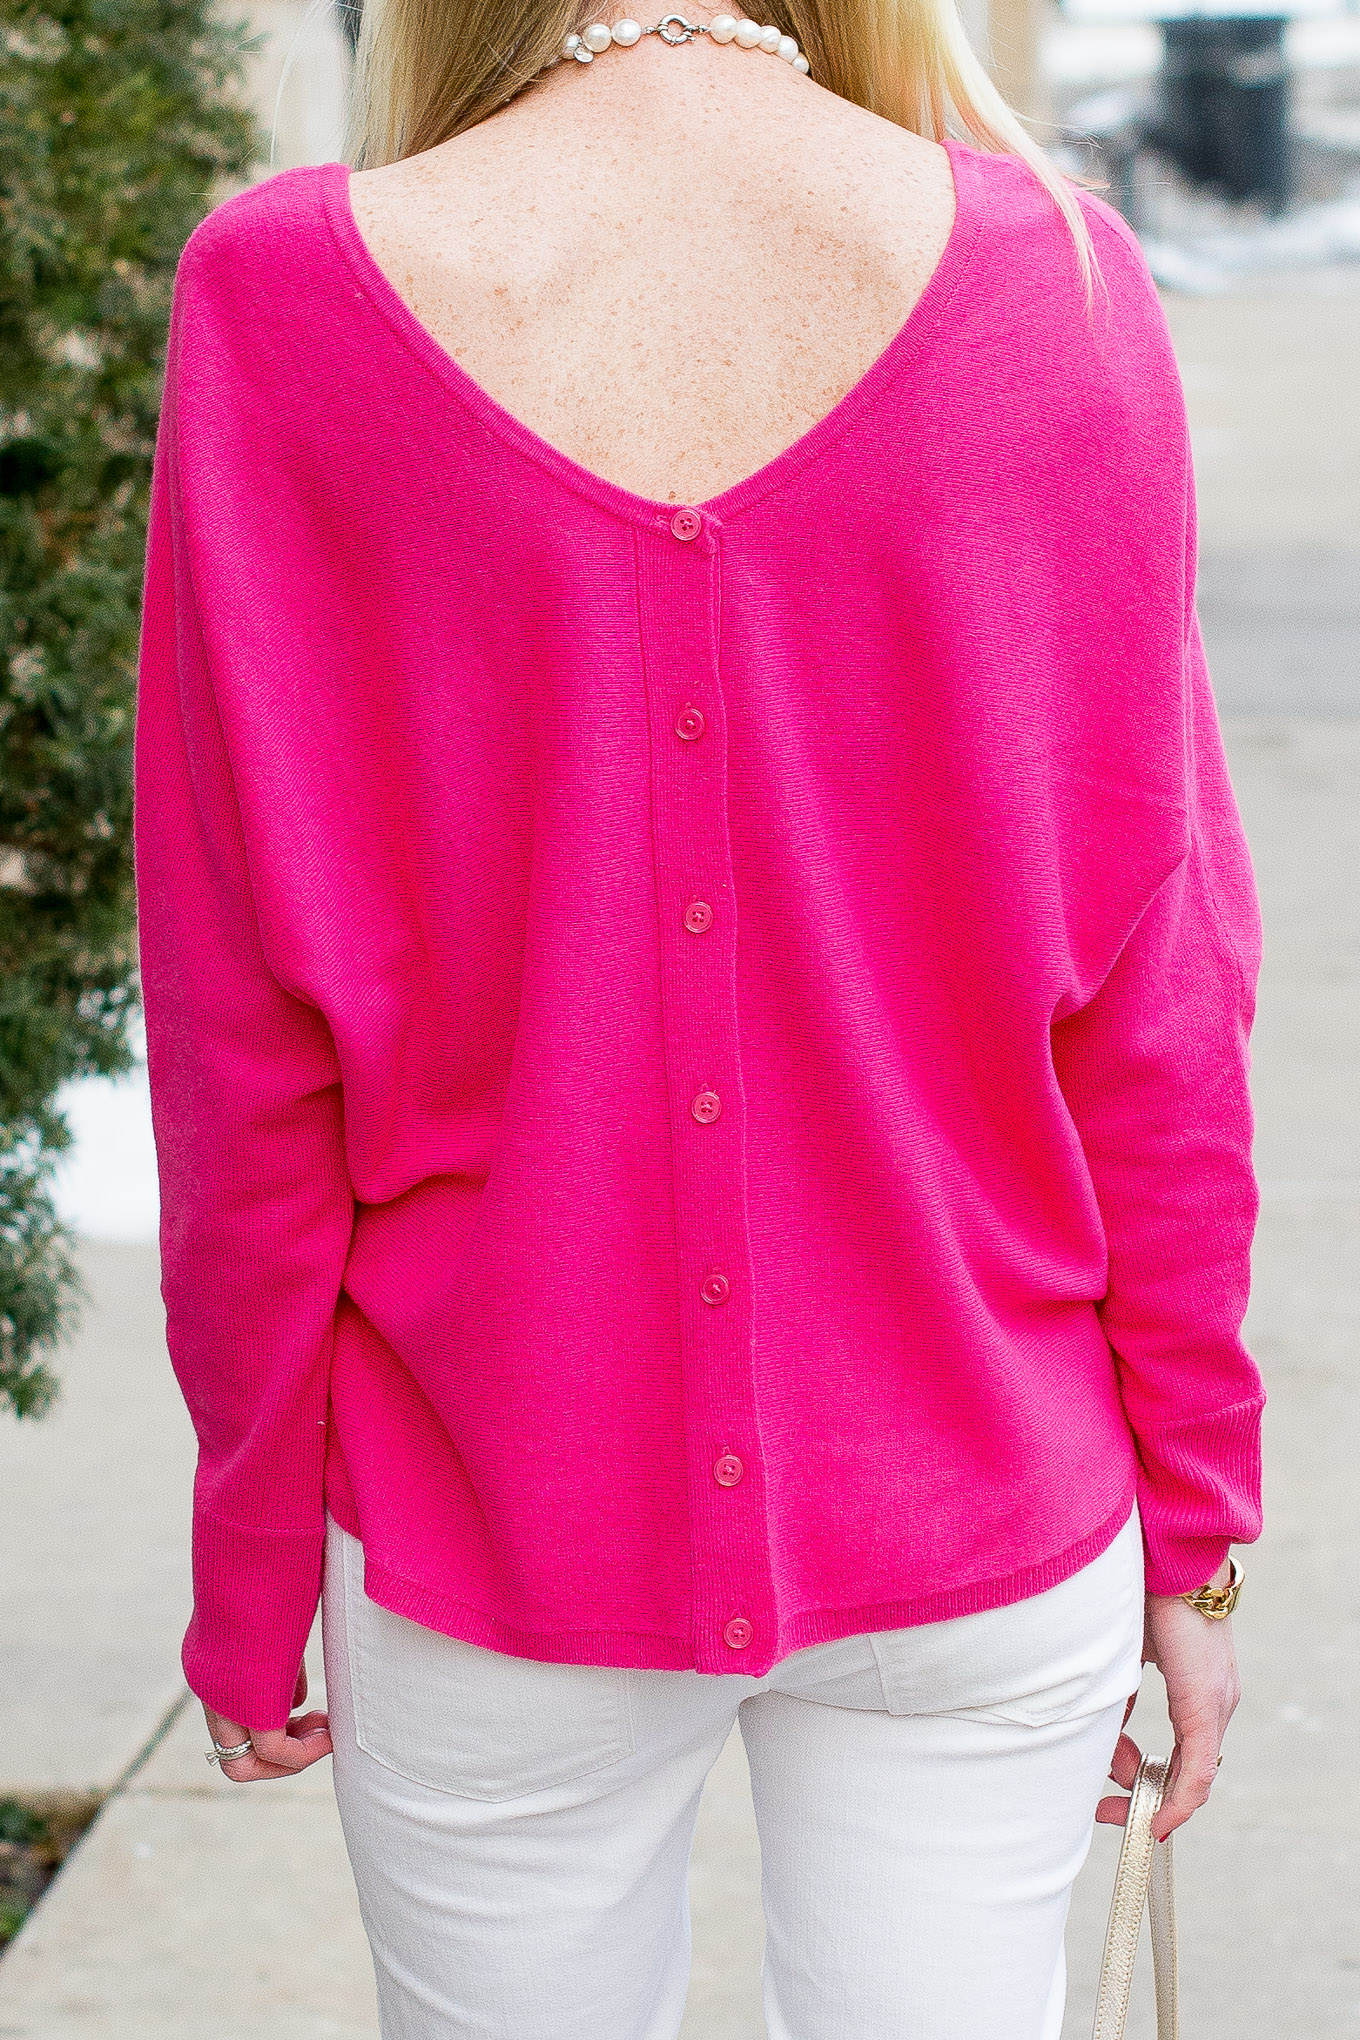 Garnet Hill Pink Cashmere Sweater-27